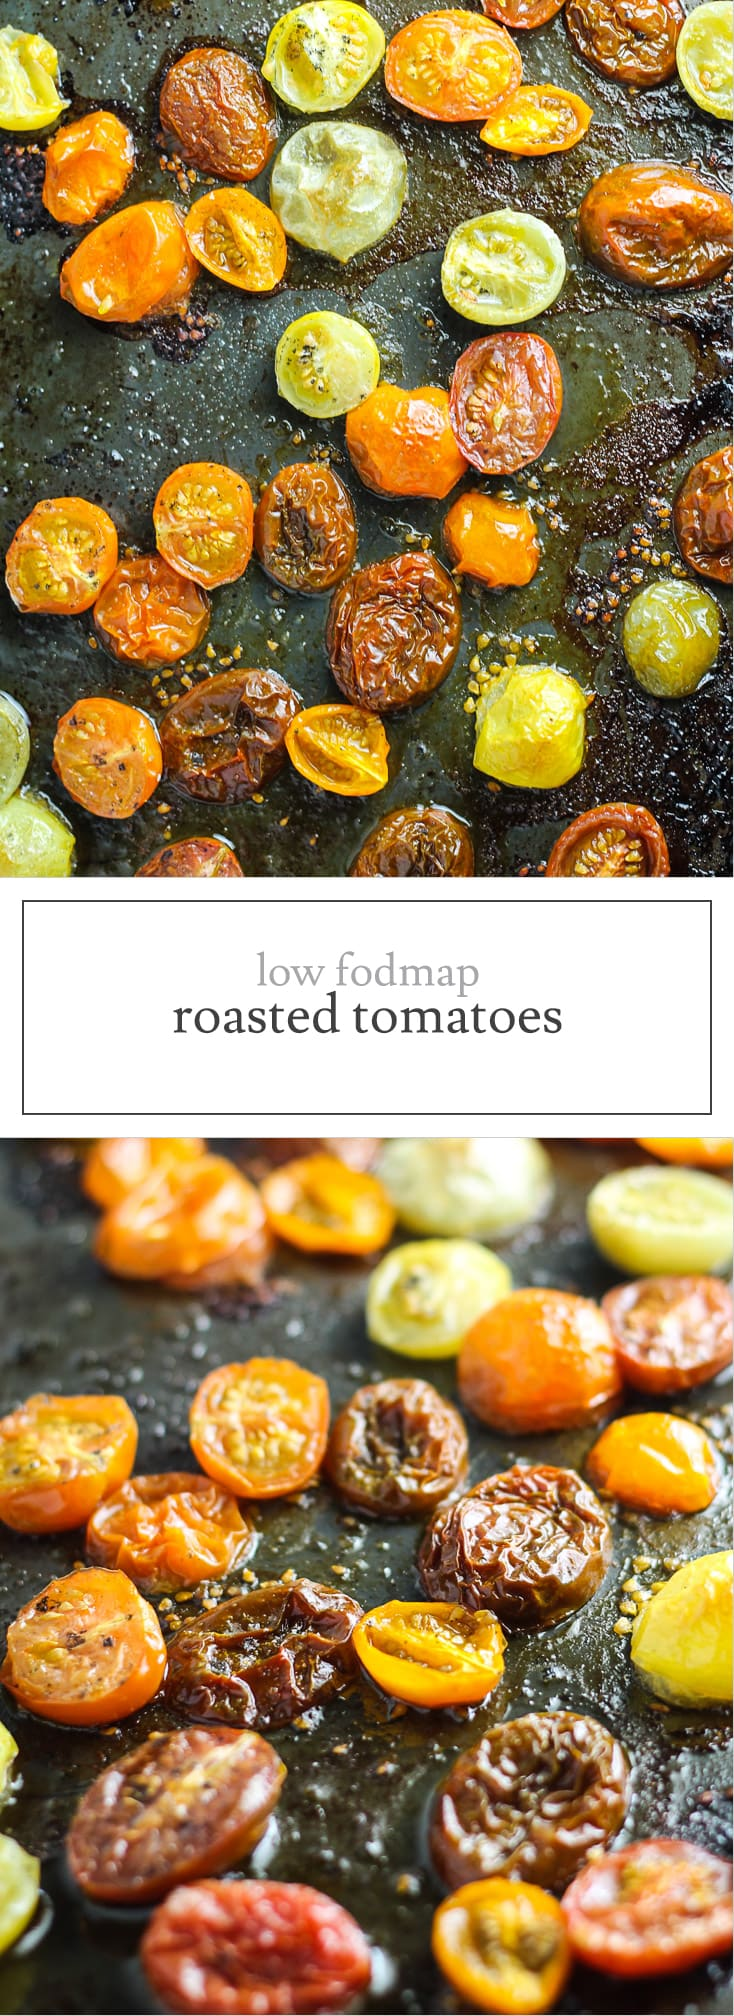 Add a boost of umami to pasta and pizza with these easy, Low FODMAP Roasted Tomatoes. Just three simple ingredients - cherry tomatoes, garlic olive oil and sea salt!